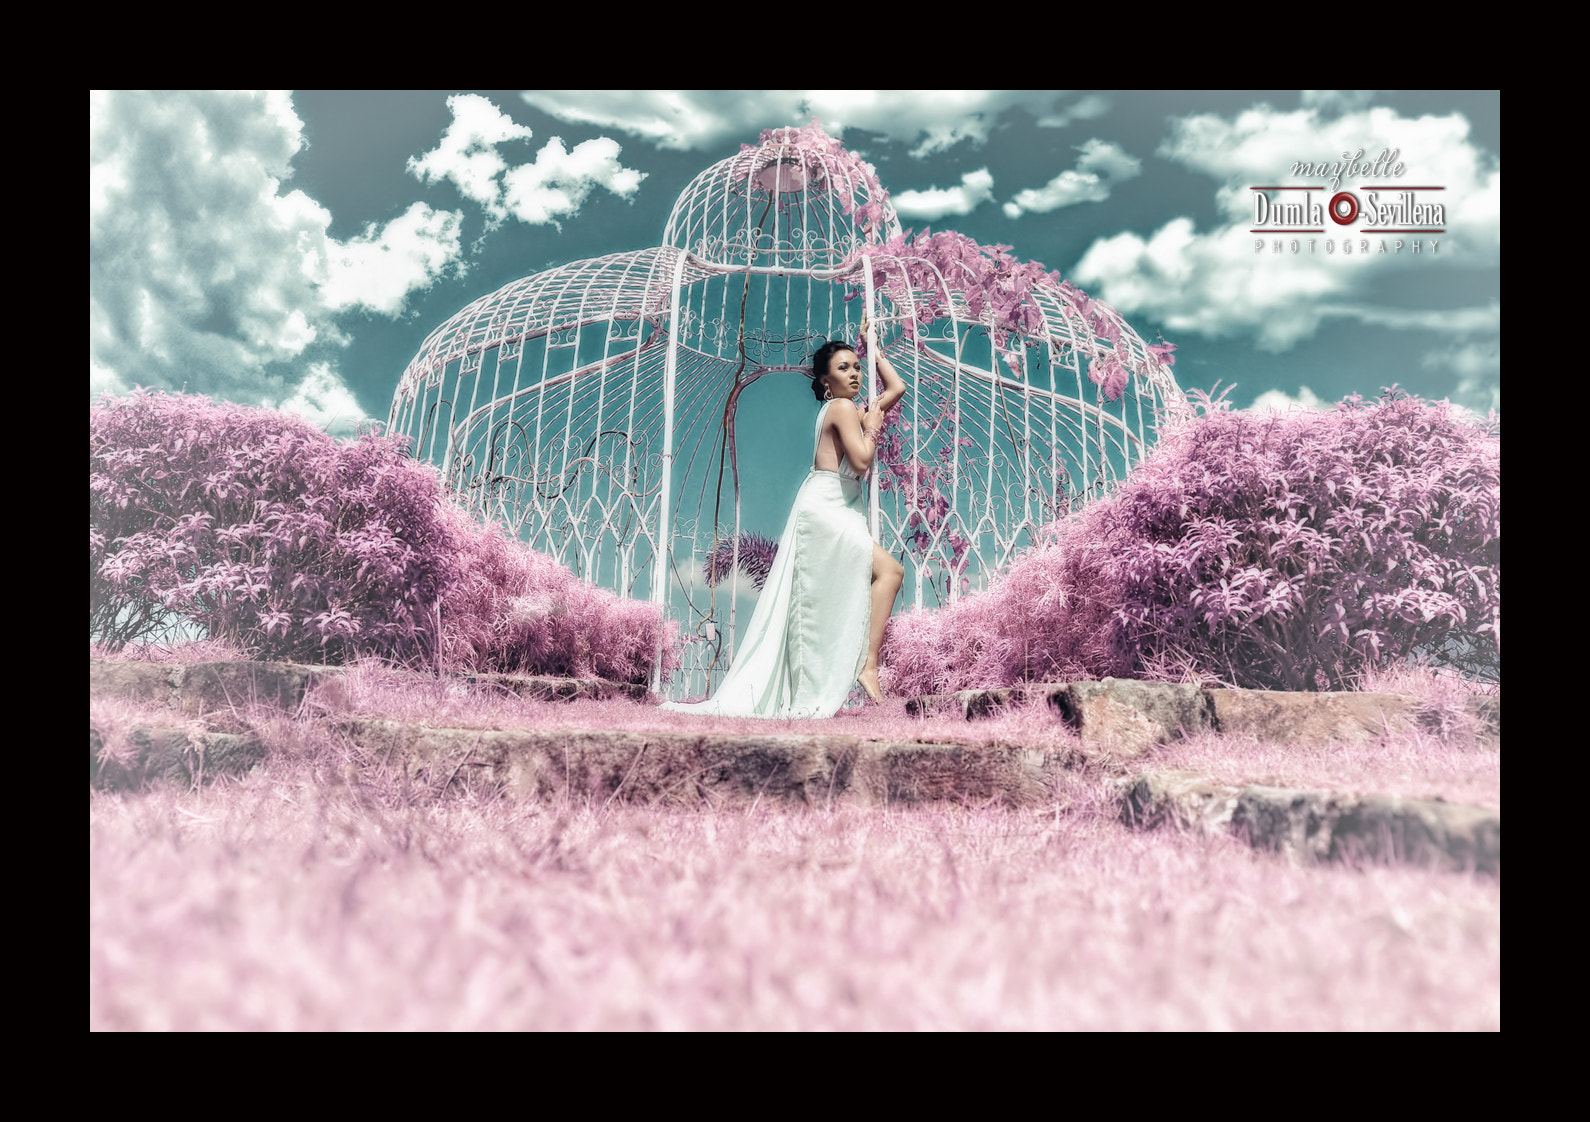 Photograph My Workflow: Pseudo IR by Maybelle Dumlao- Sevillena on 500px